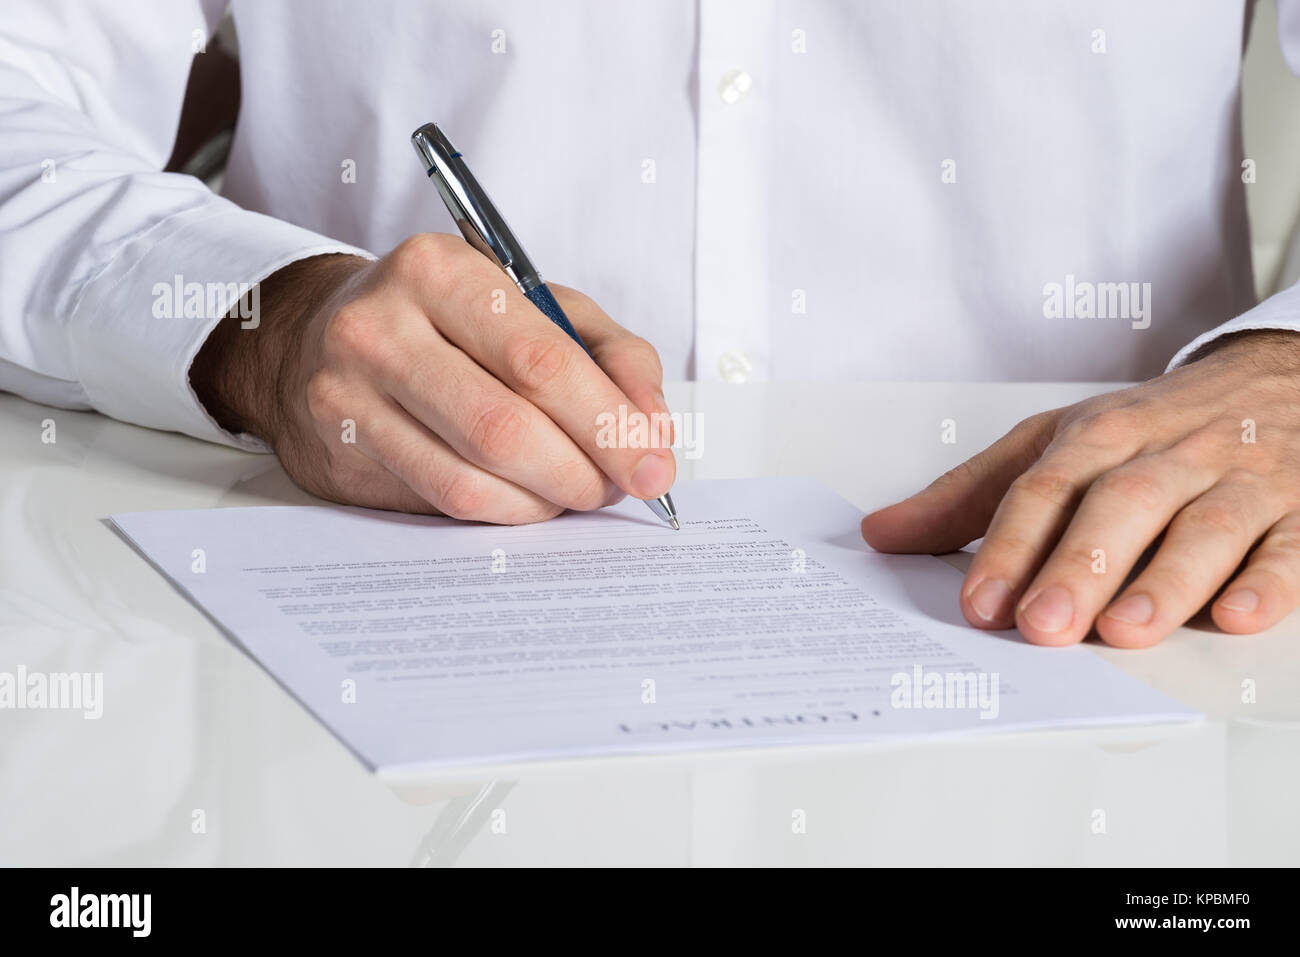 Businessman Signing Contract Document - Stock Image